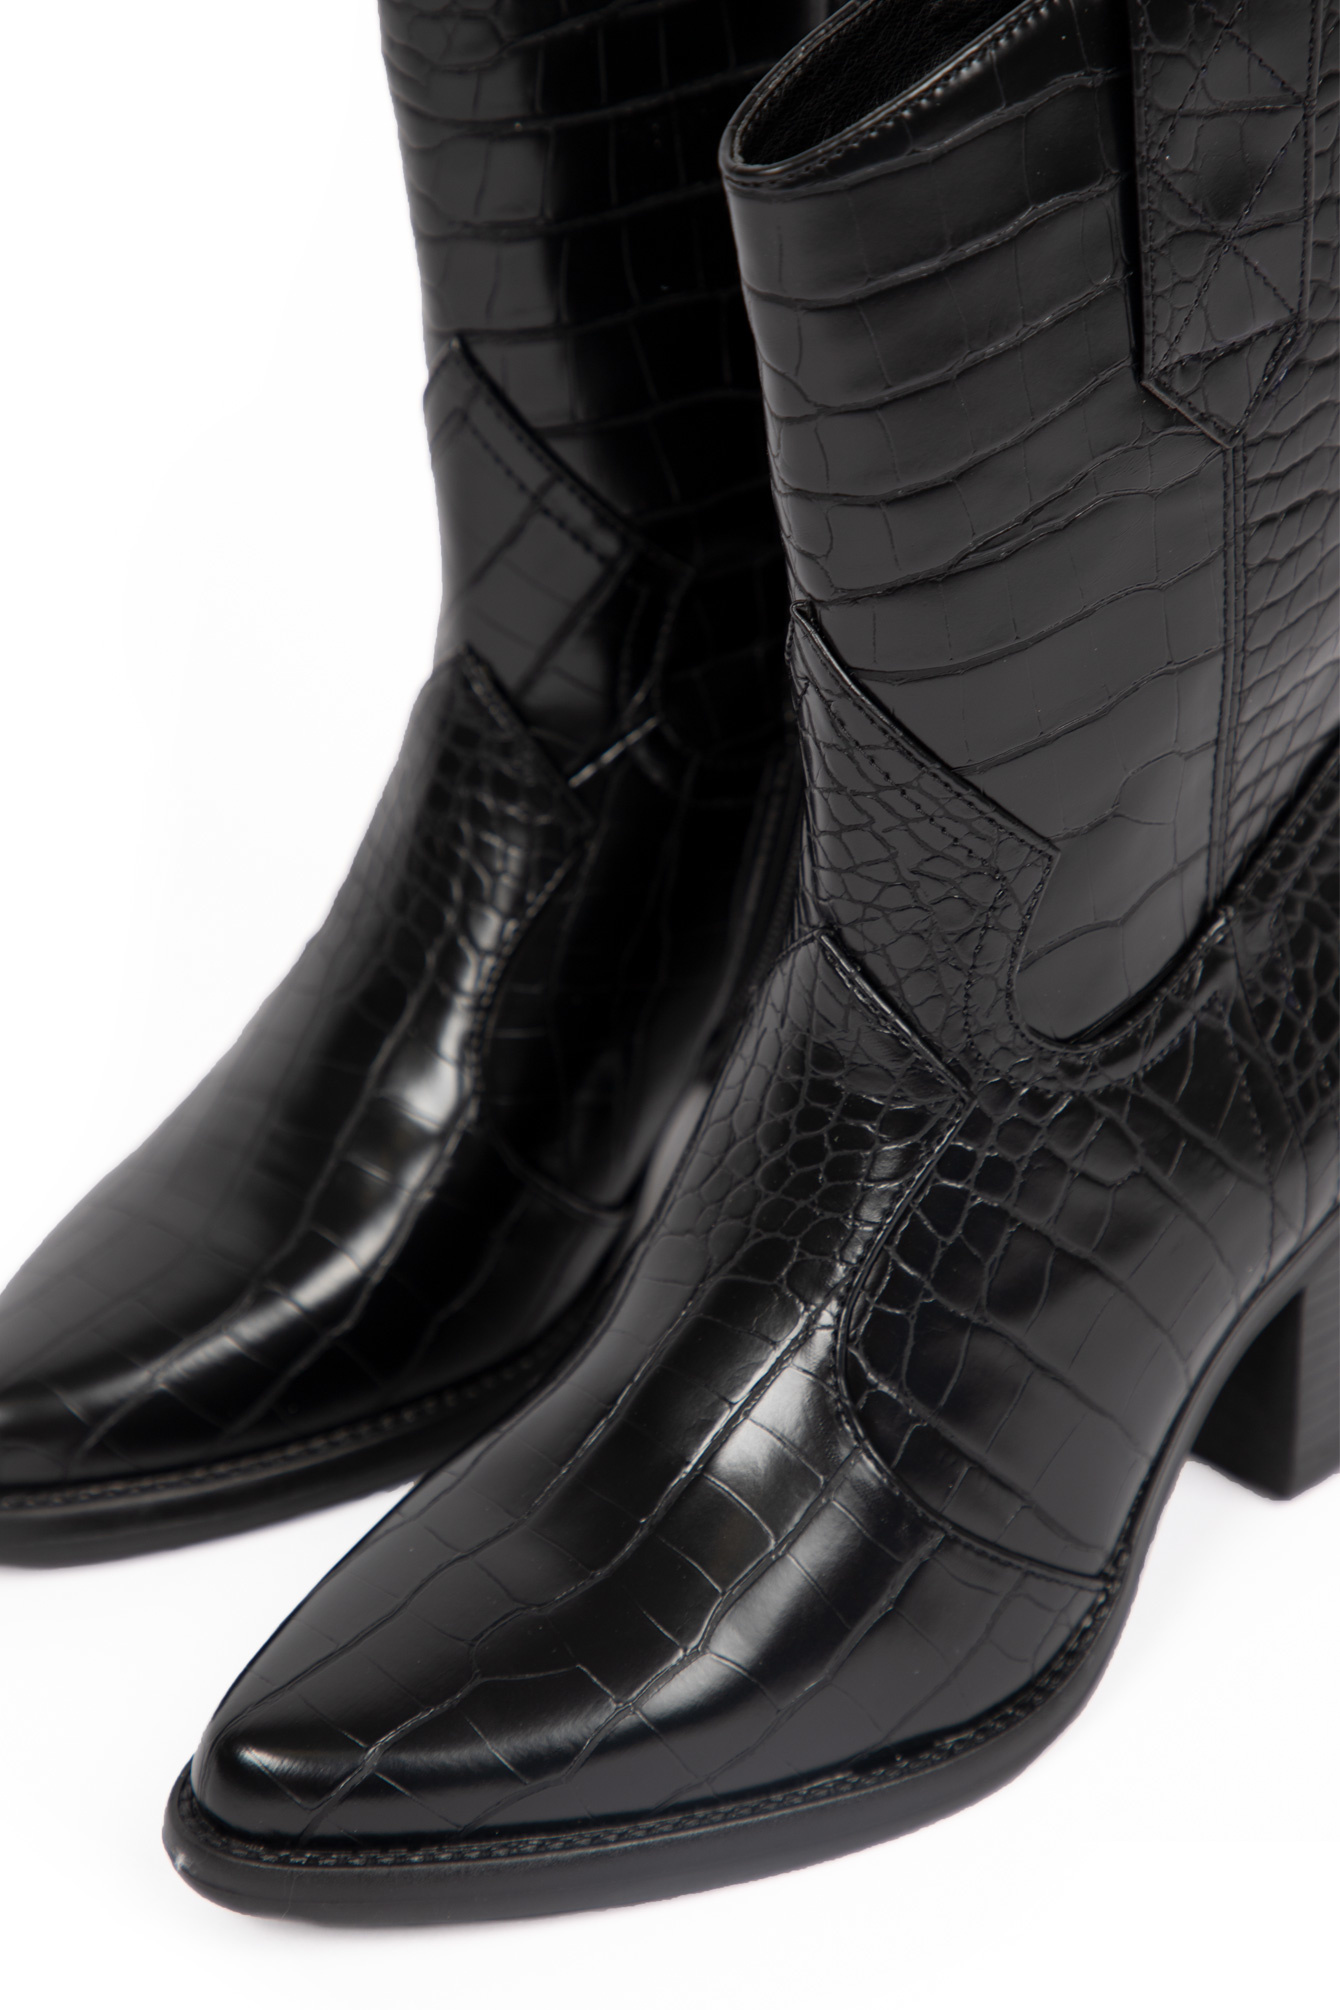 Western boots black